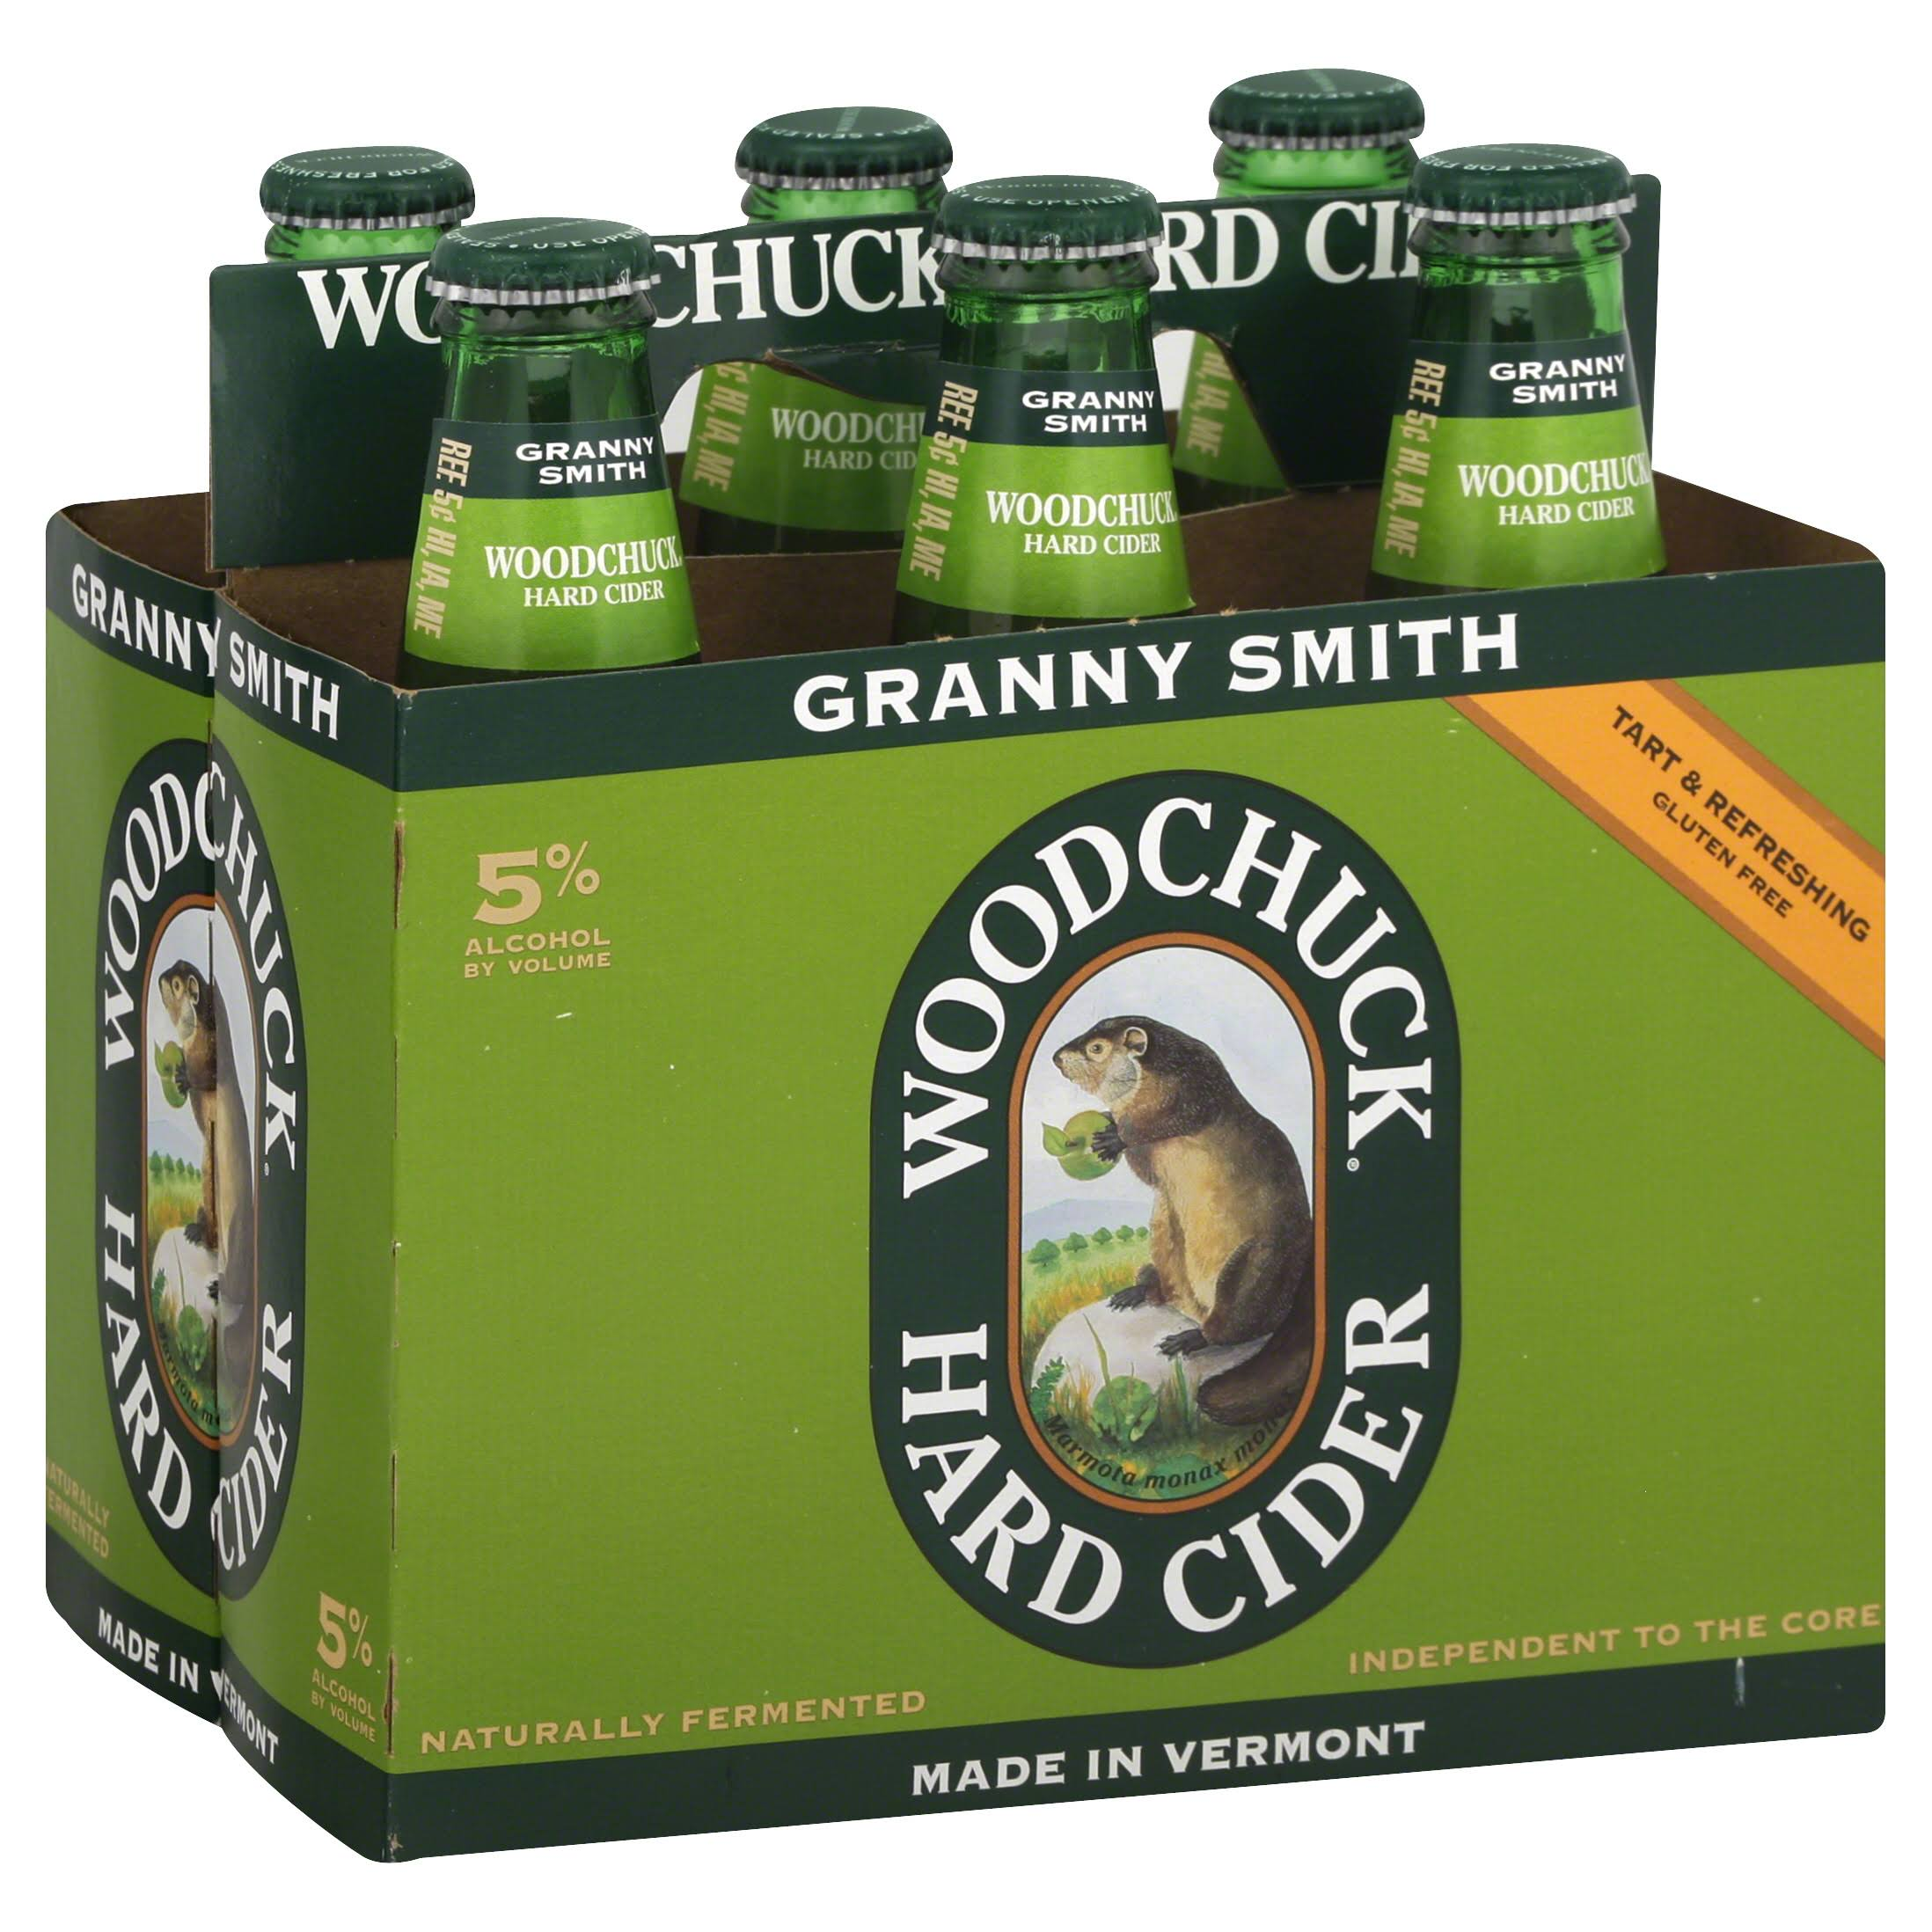 Woodchuck Granny Smith Hard Cider